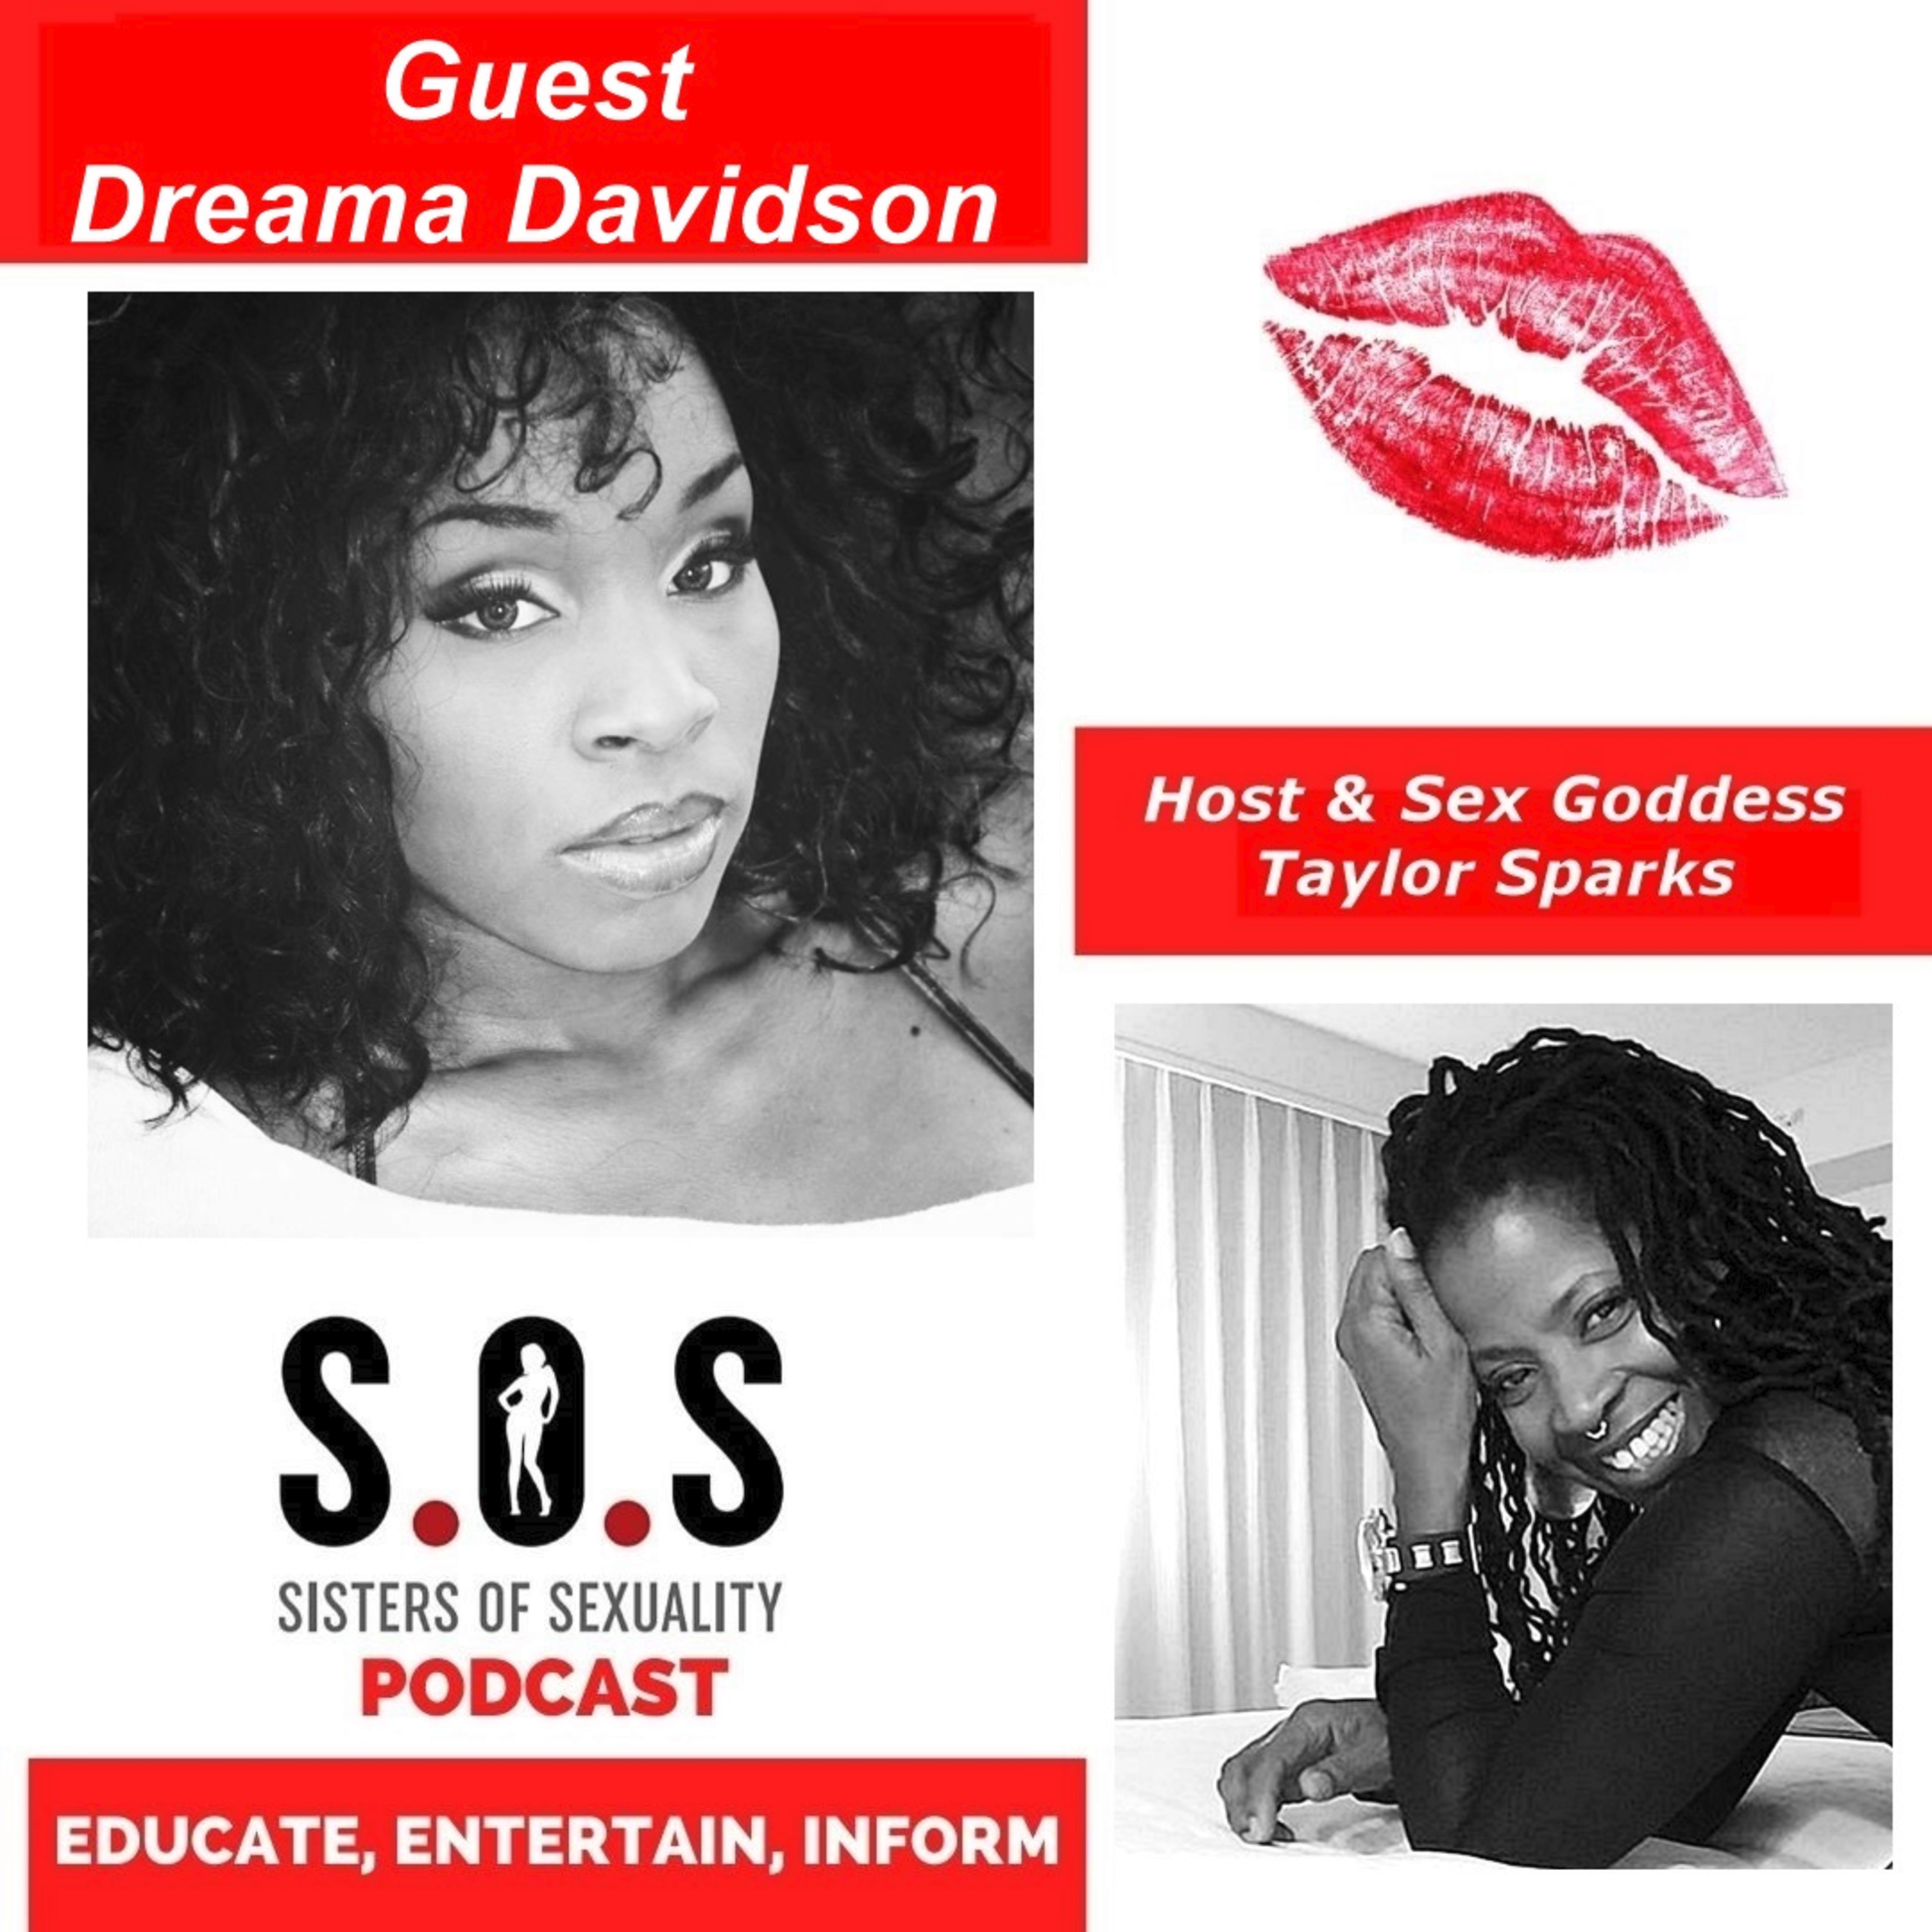 Sisters of Sexuality: Five Shades Of Play - Living The Dream With Choreographer, Fitness Expert and Motivational Speaker Dreama Davidson